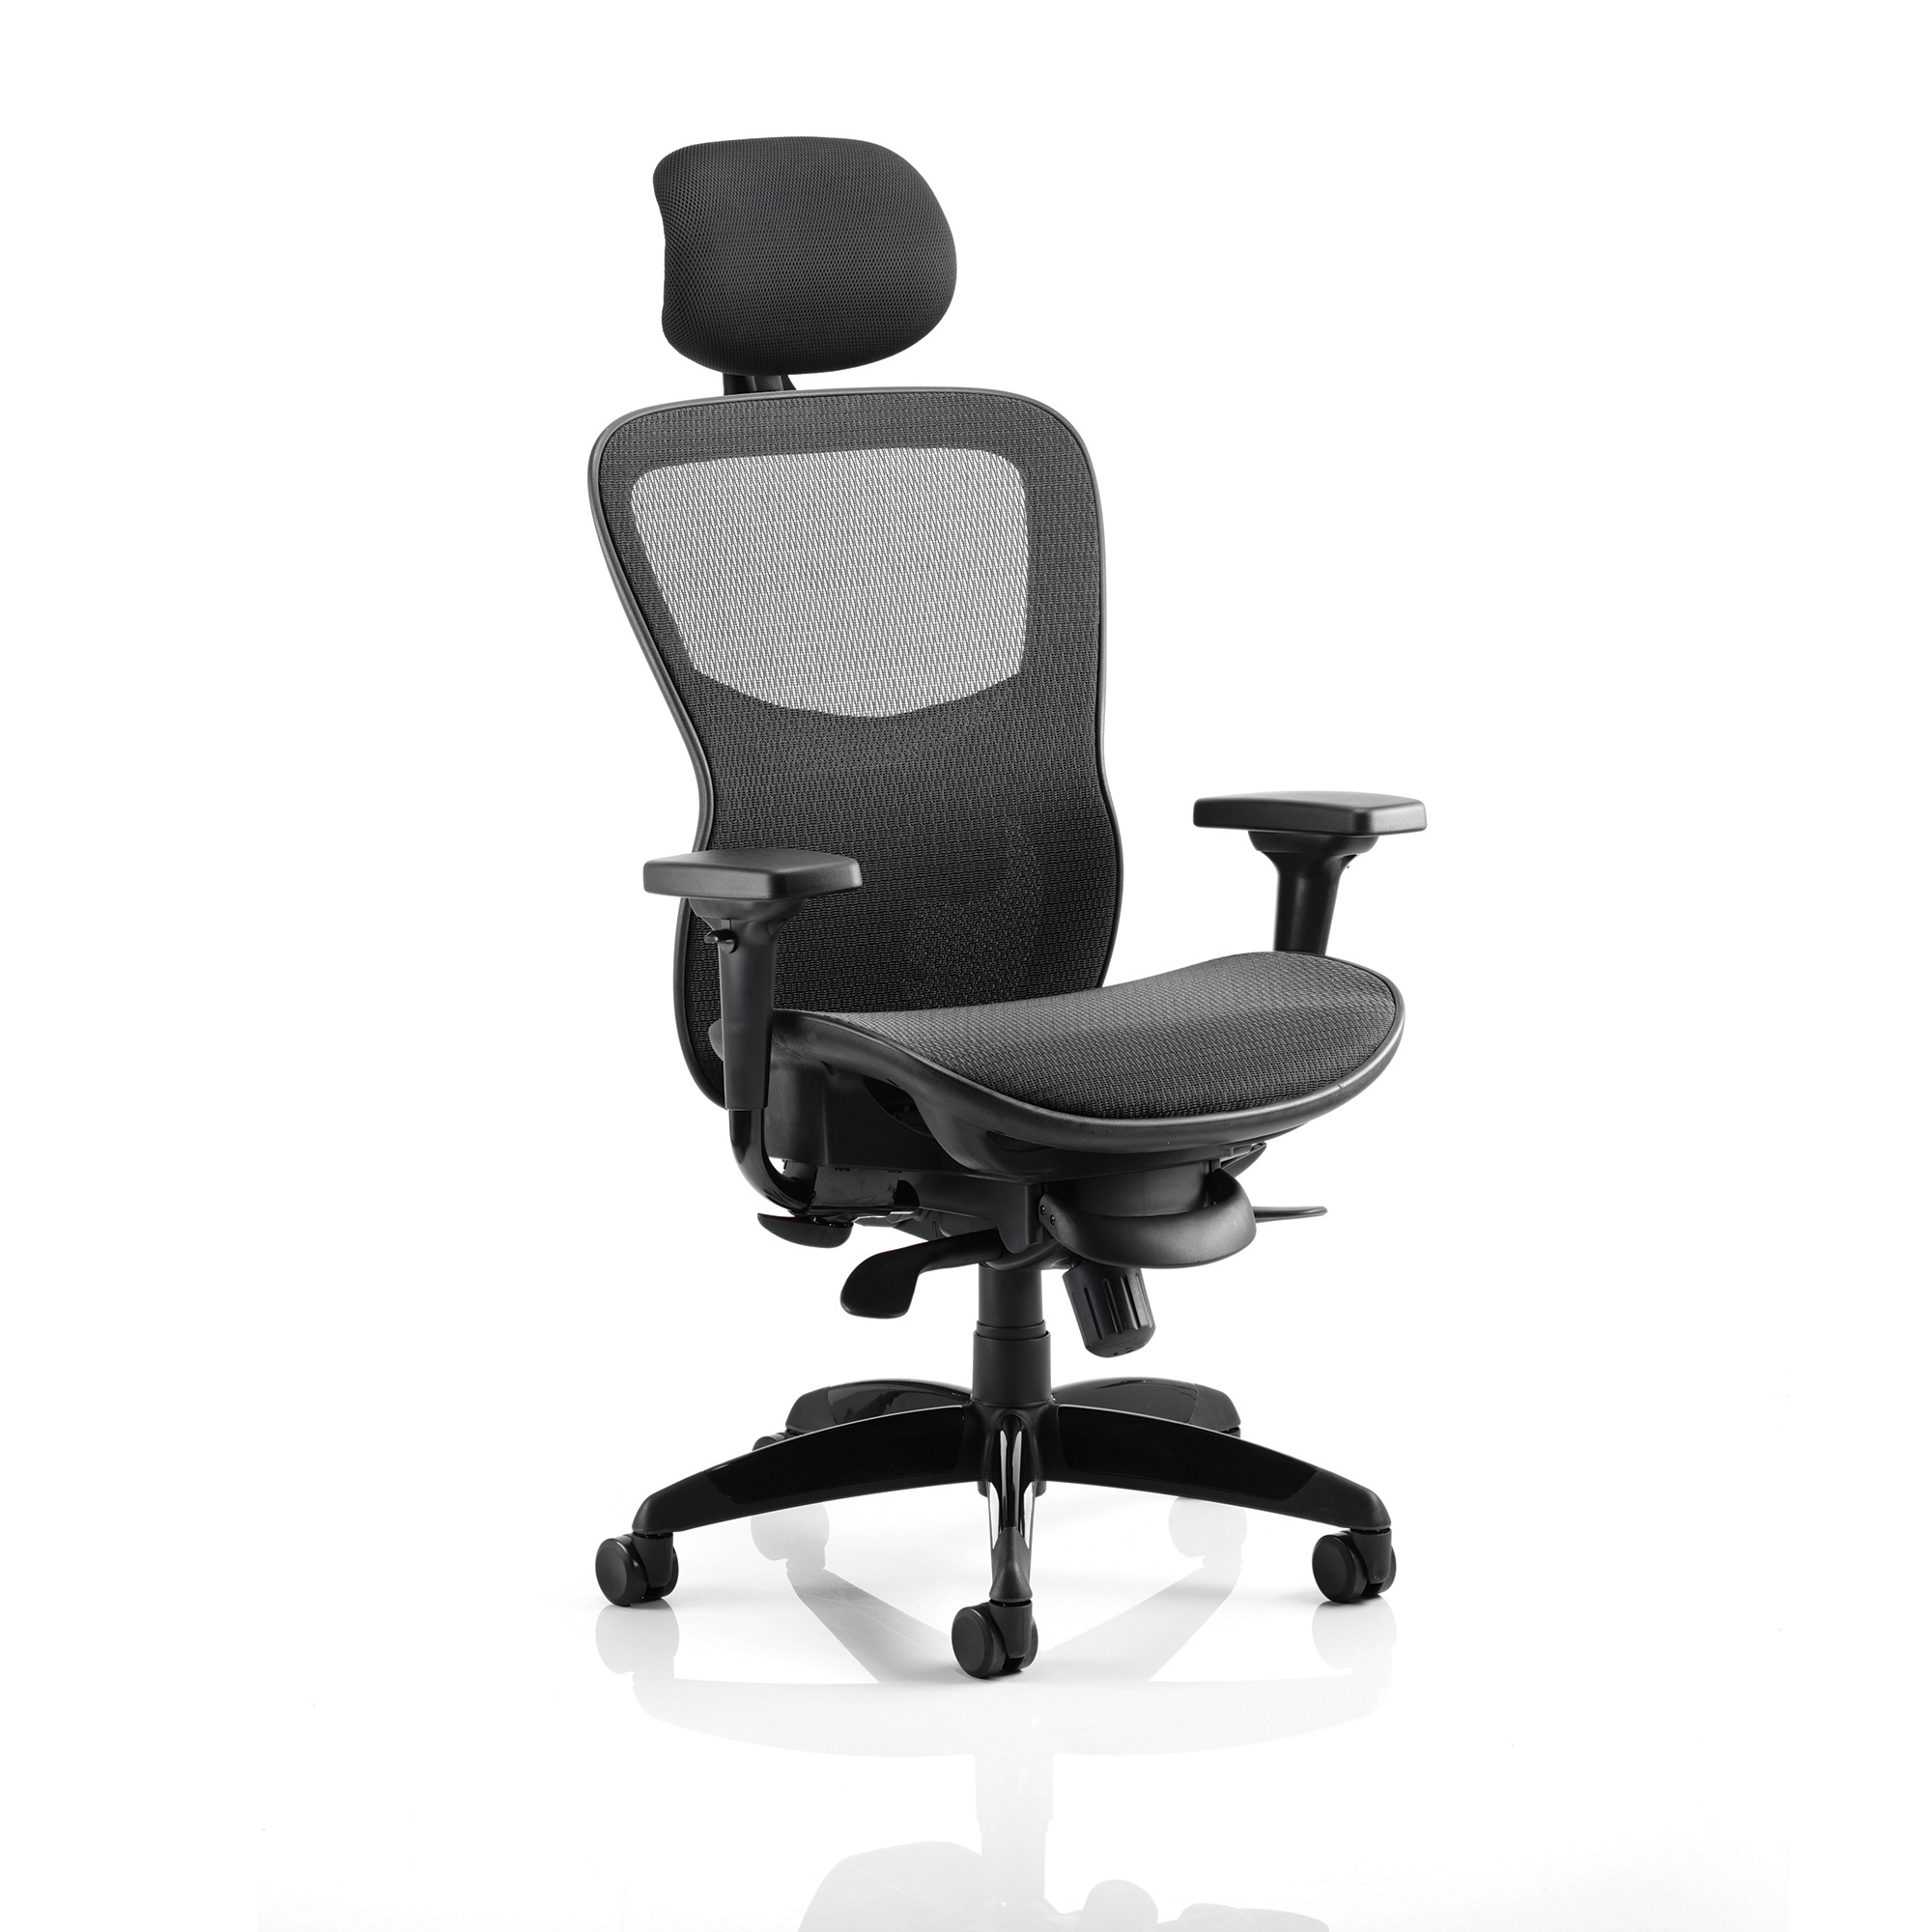 Task seating Adroit Stealth Shadow Ergo Posture Chair With Arms With Headrest Mesh Seat And Back Black Ref KC0159